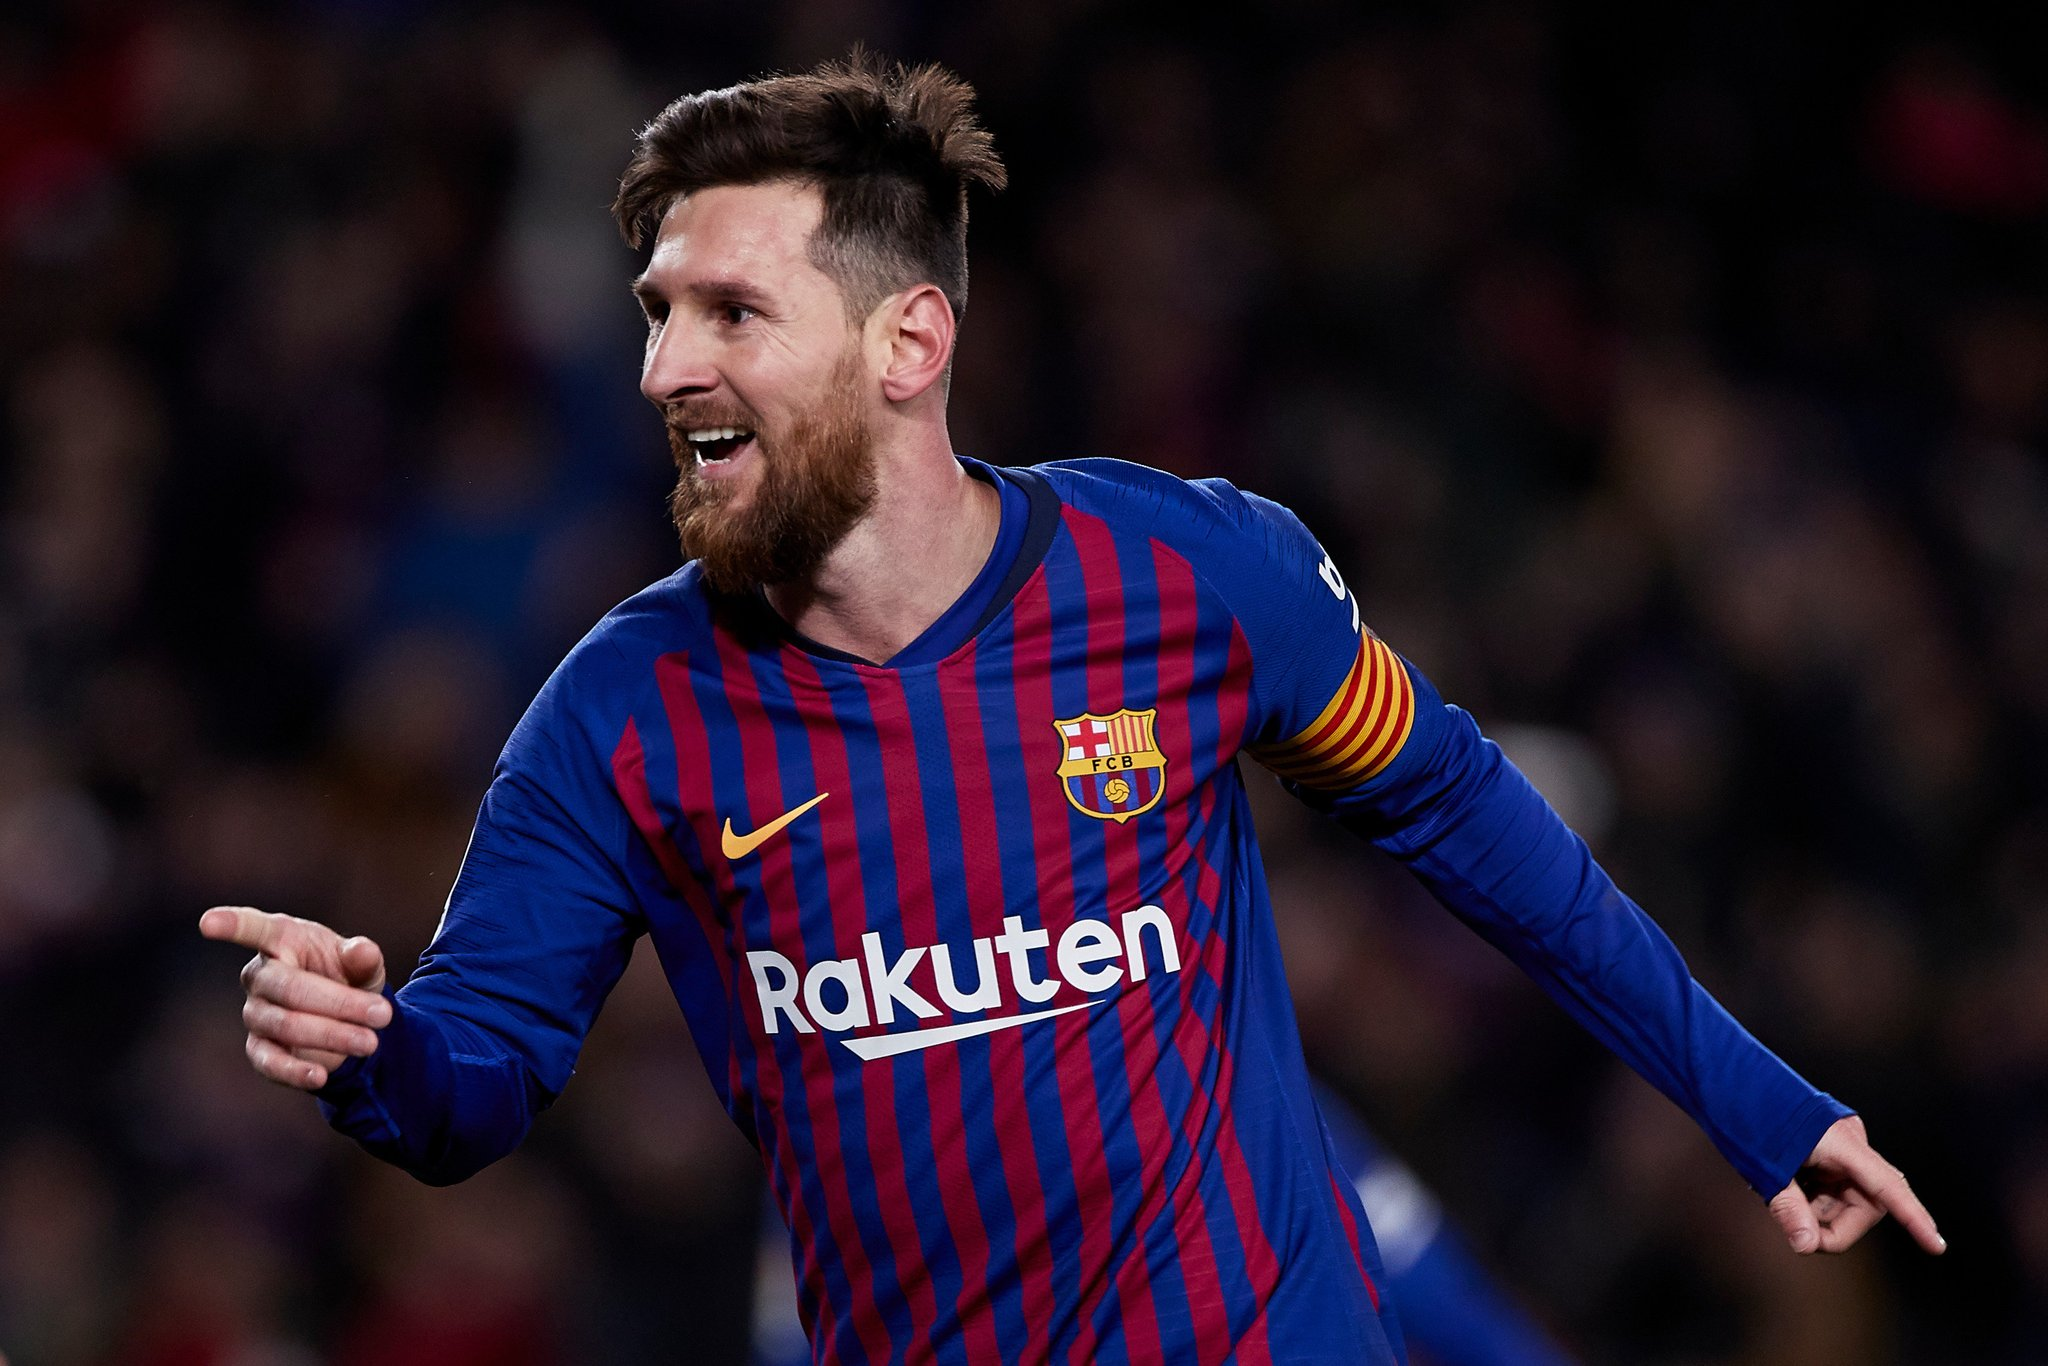 *free* shipping on qualifying offers. Lionel MESSI scores, leads Europe in goals, assists